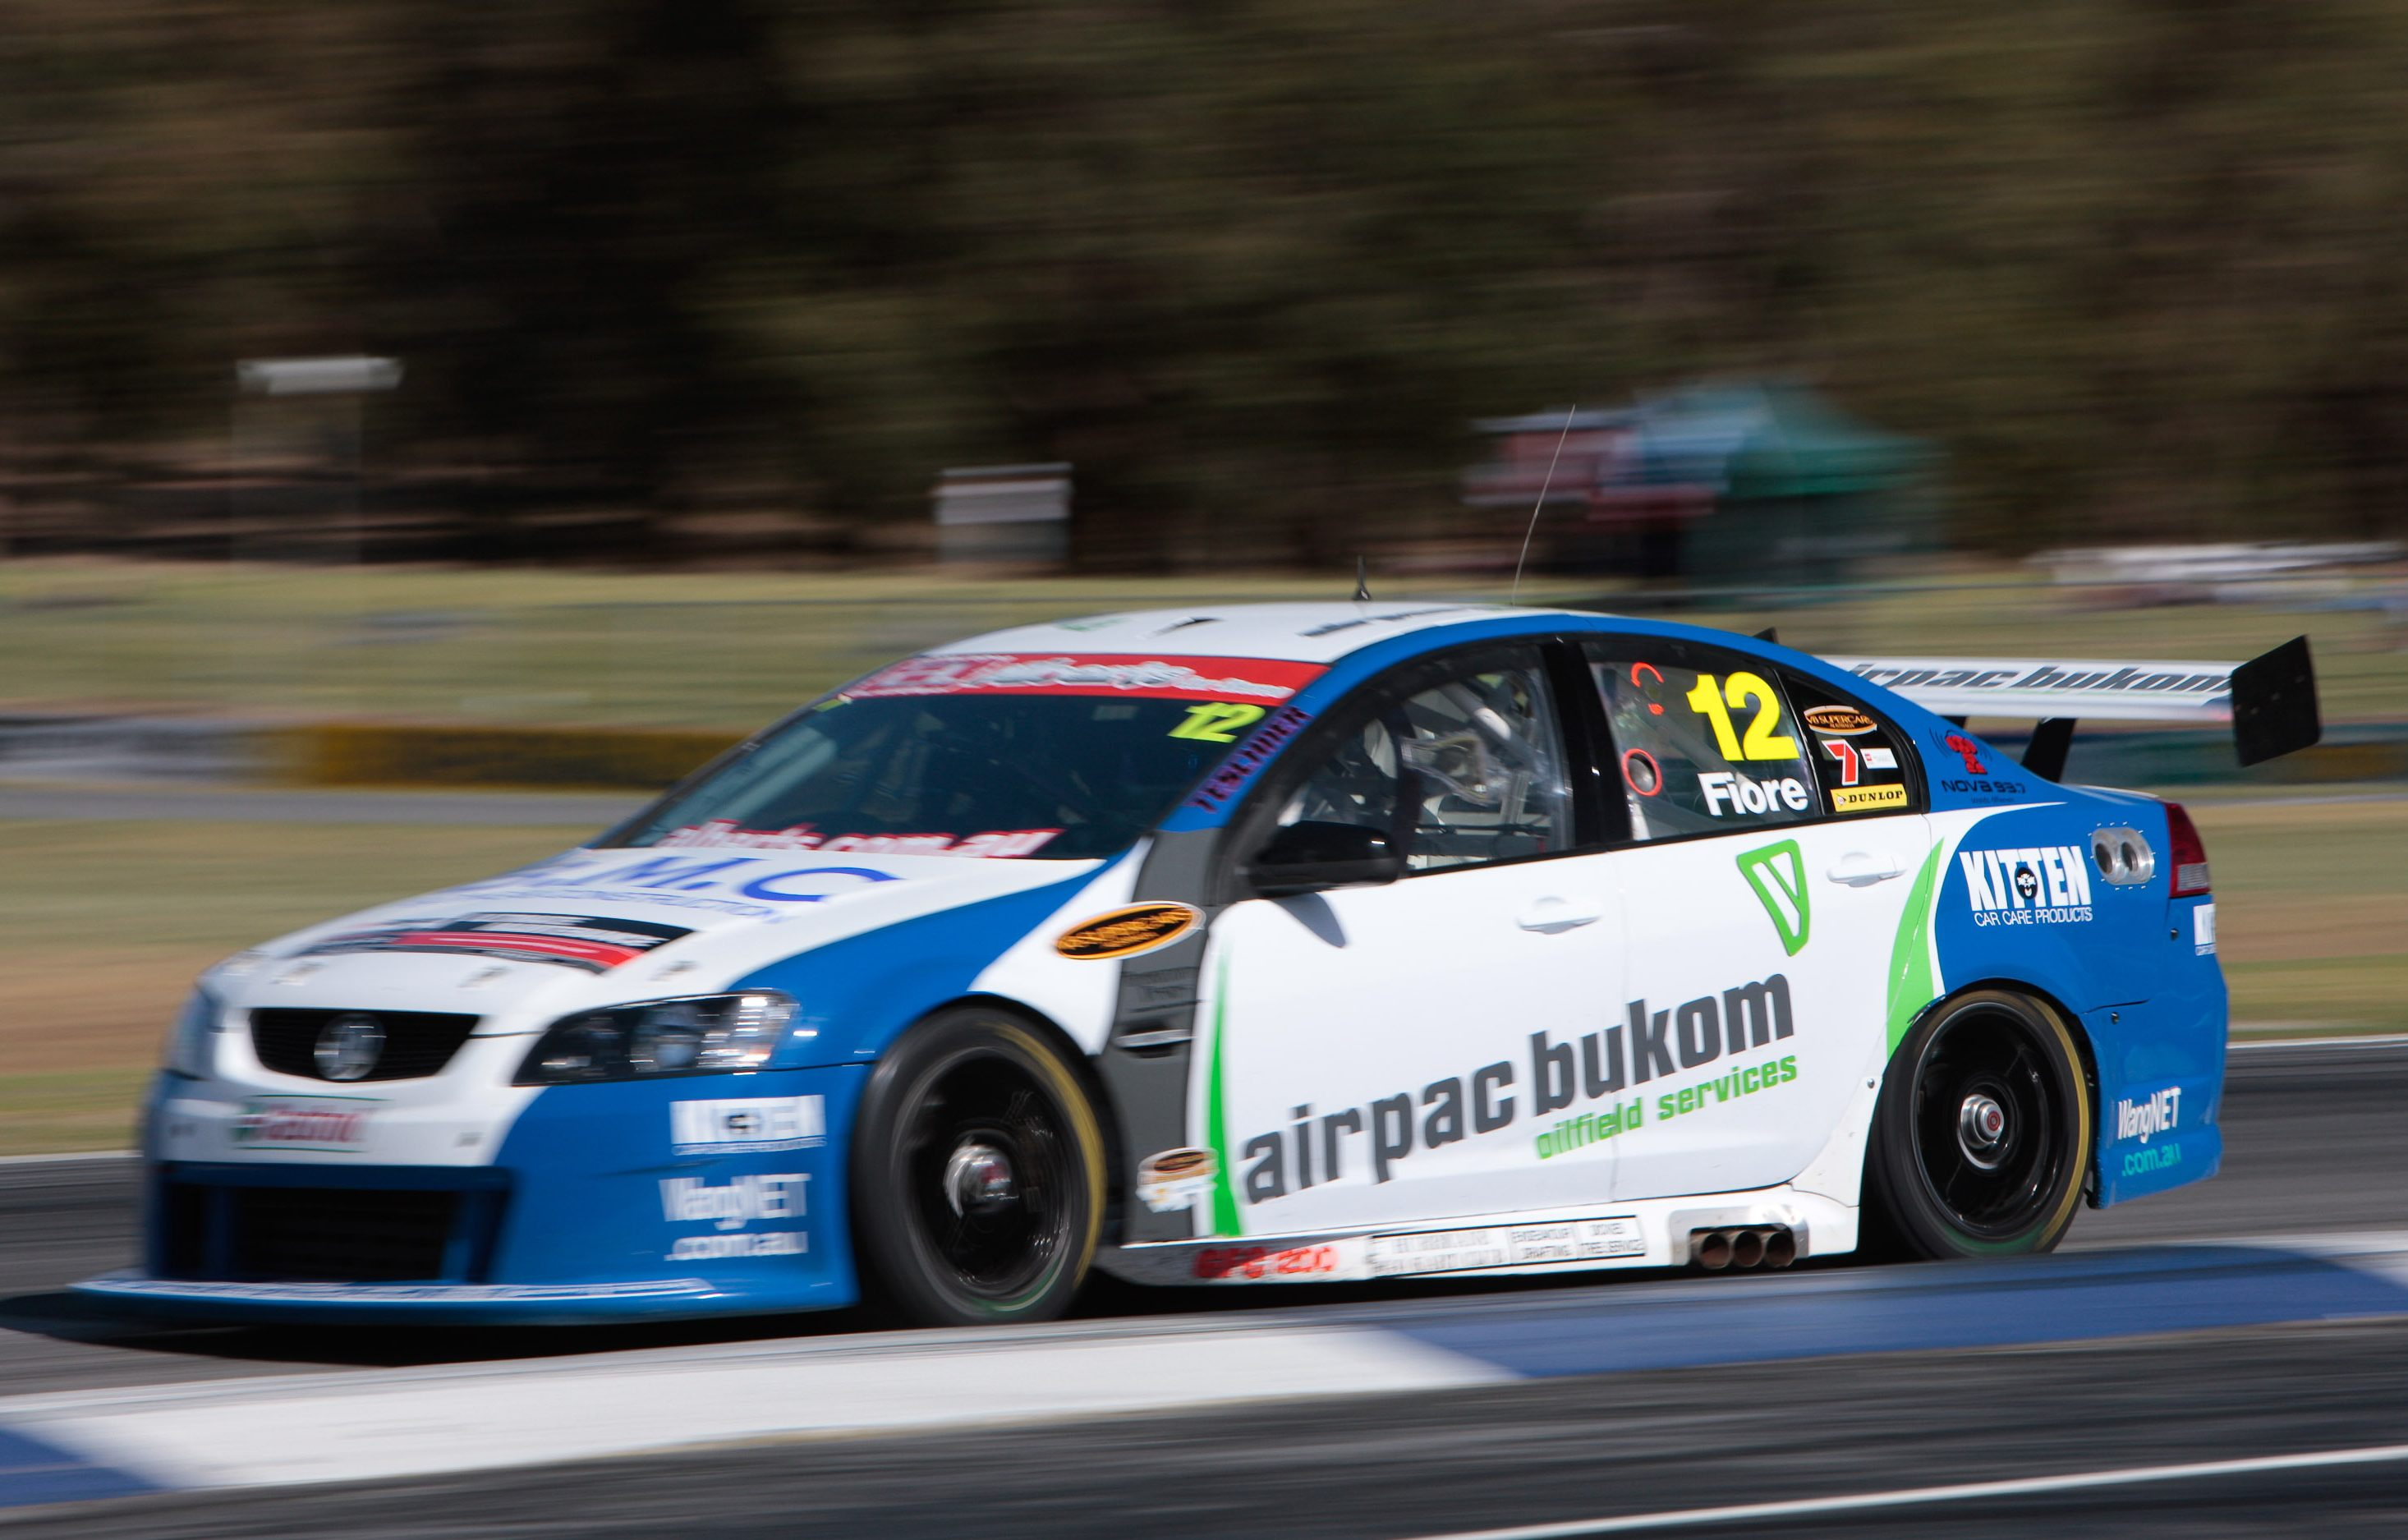 Fiore brothers to fight for Fujitsu V8 entry